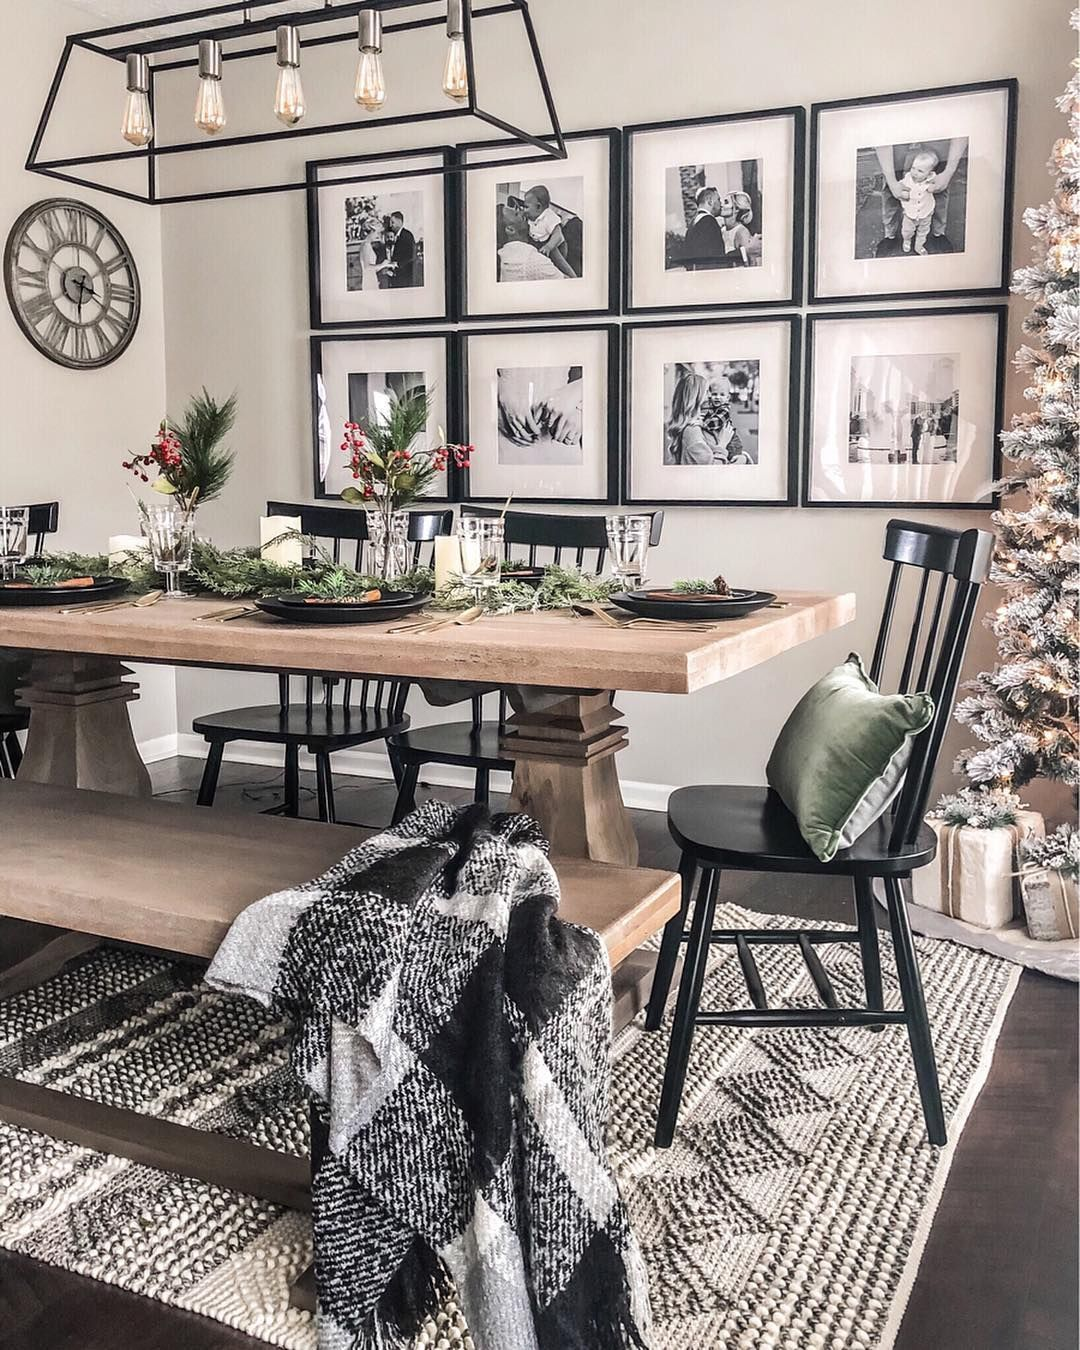 29+ Best Dining Room Wall Decor Ideas 2018 (Modern & Contemporary)        25+ Casual Dining Room Wa